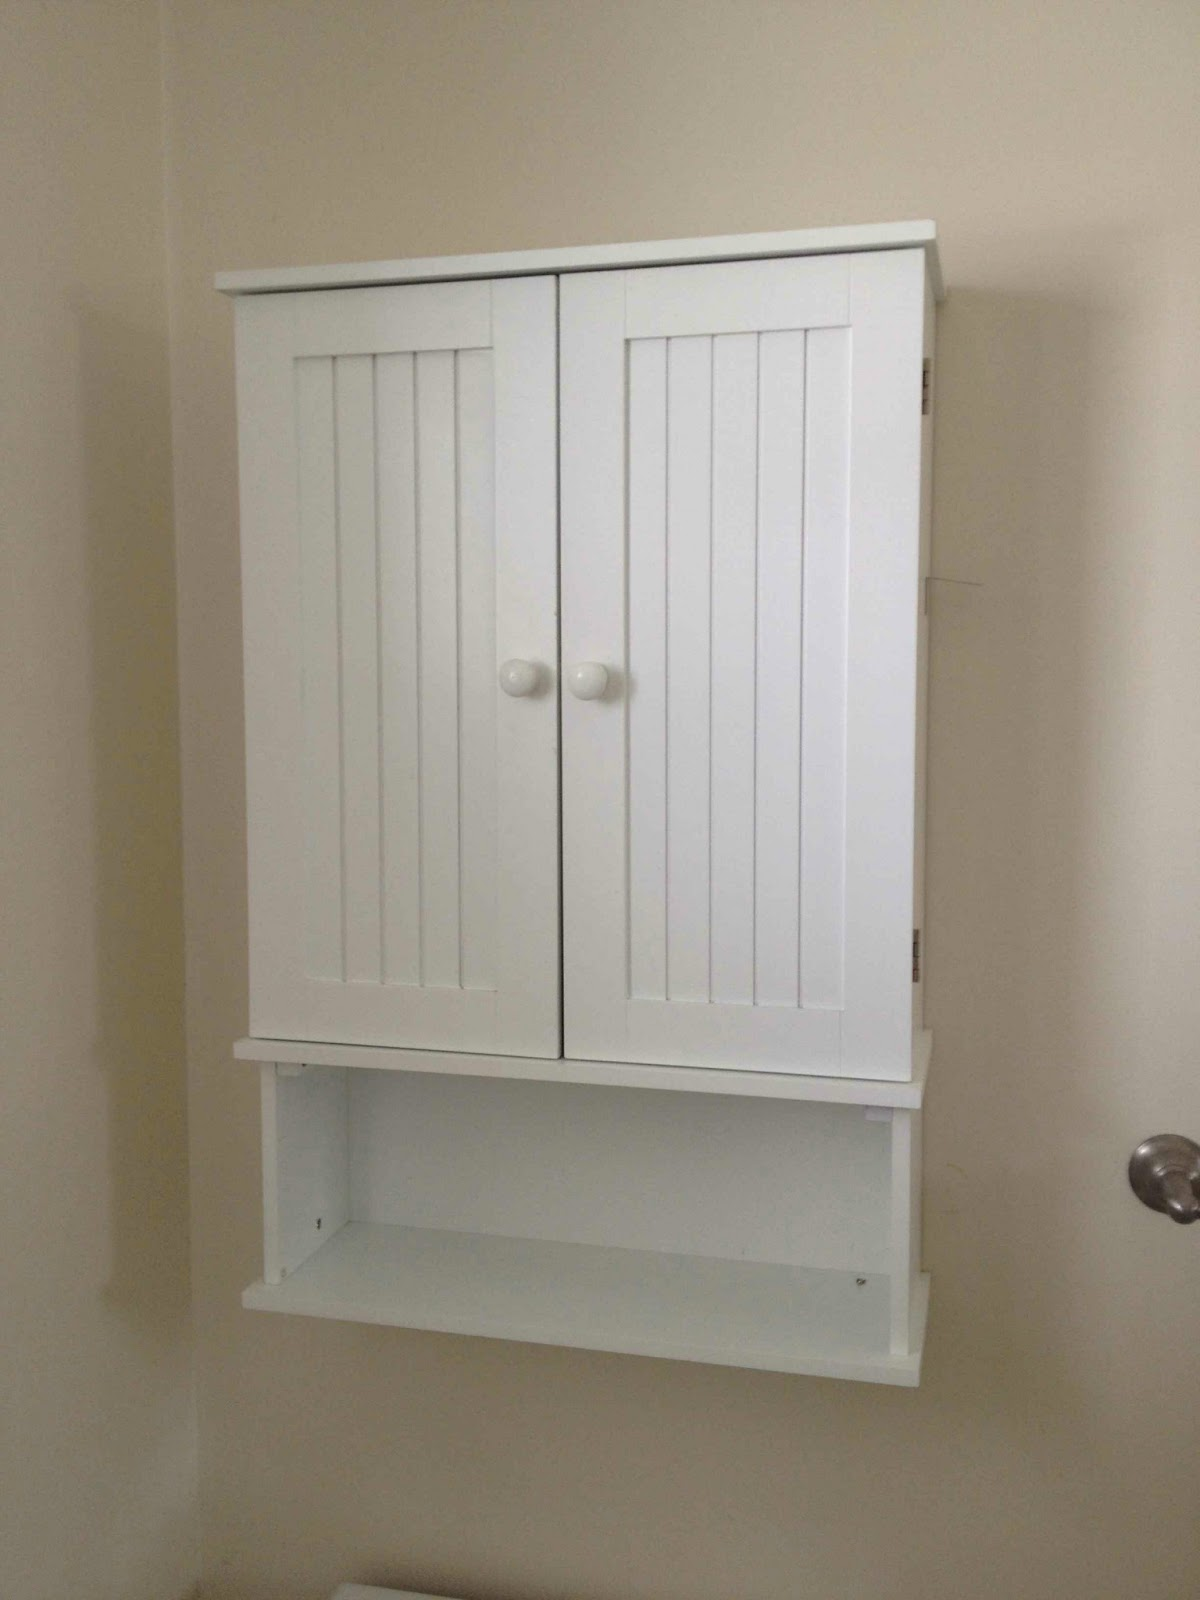 Annie sloan chalk paint bathroom cabinet makeover driven for Over the toilet cabinet